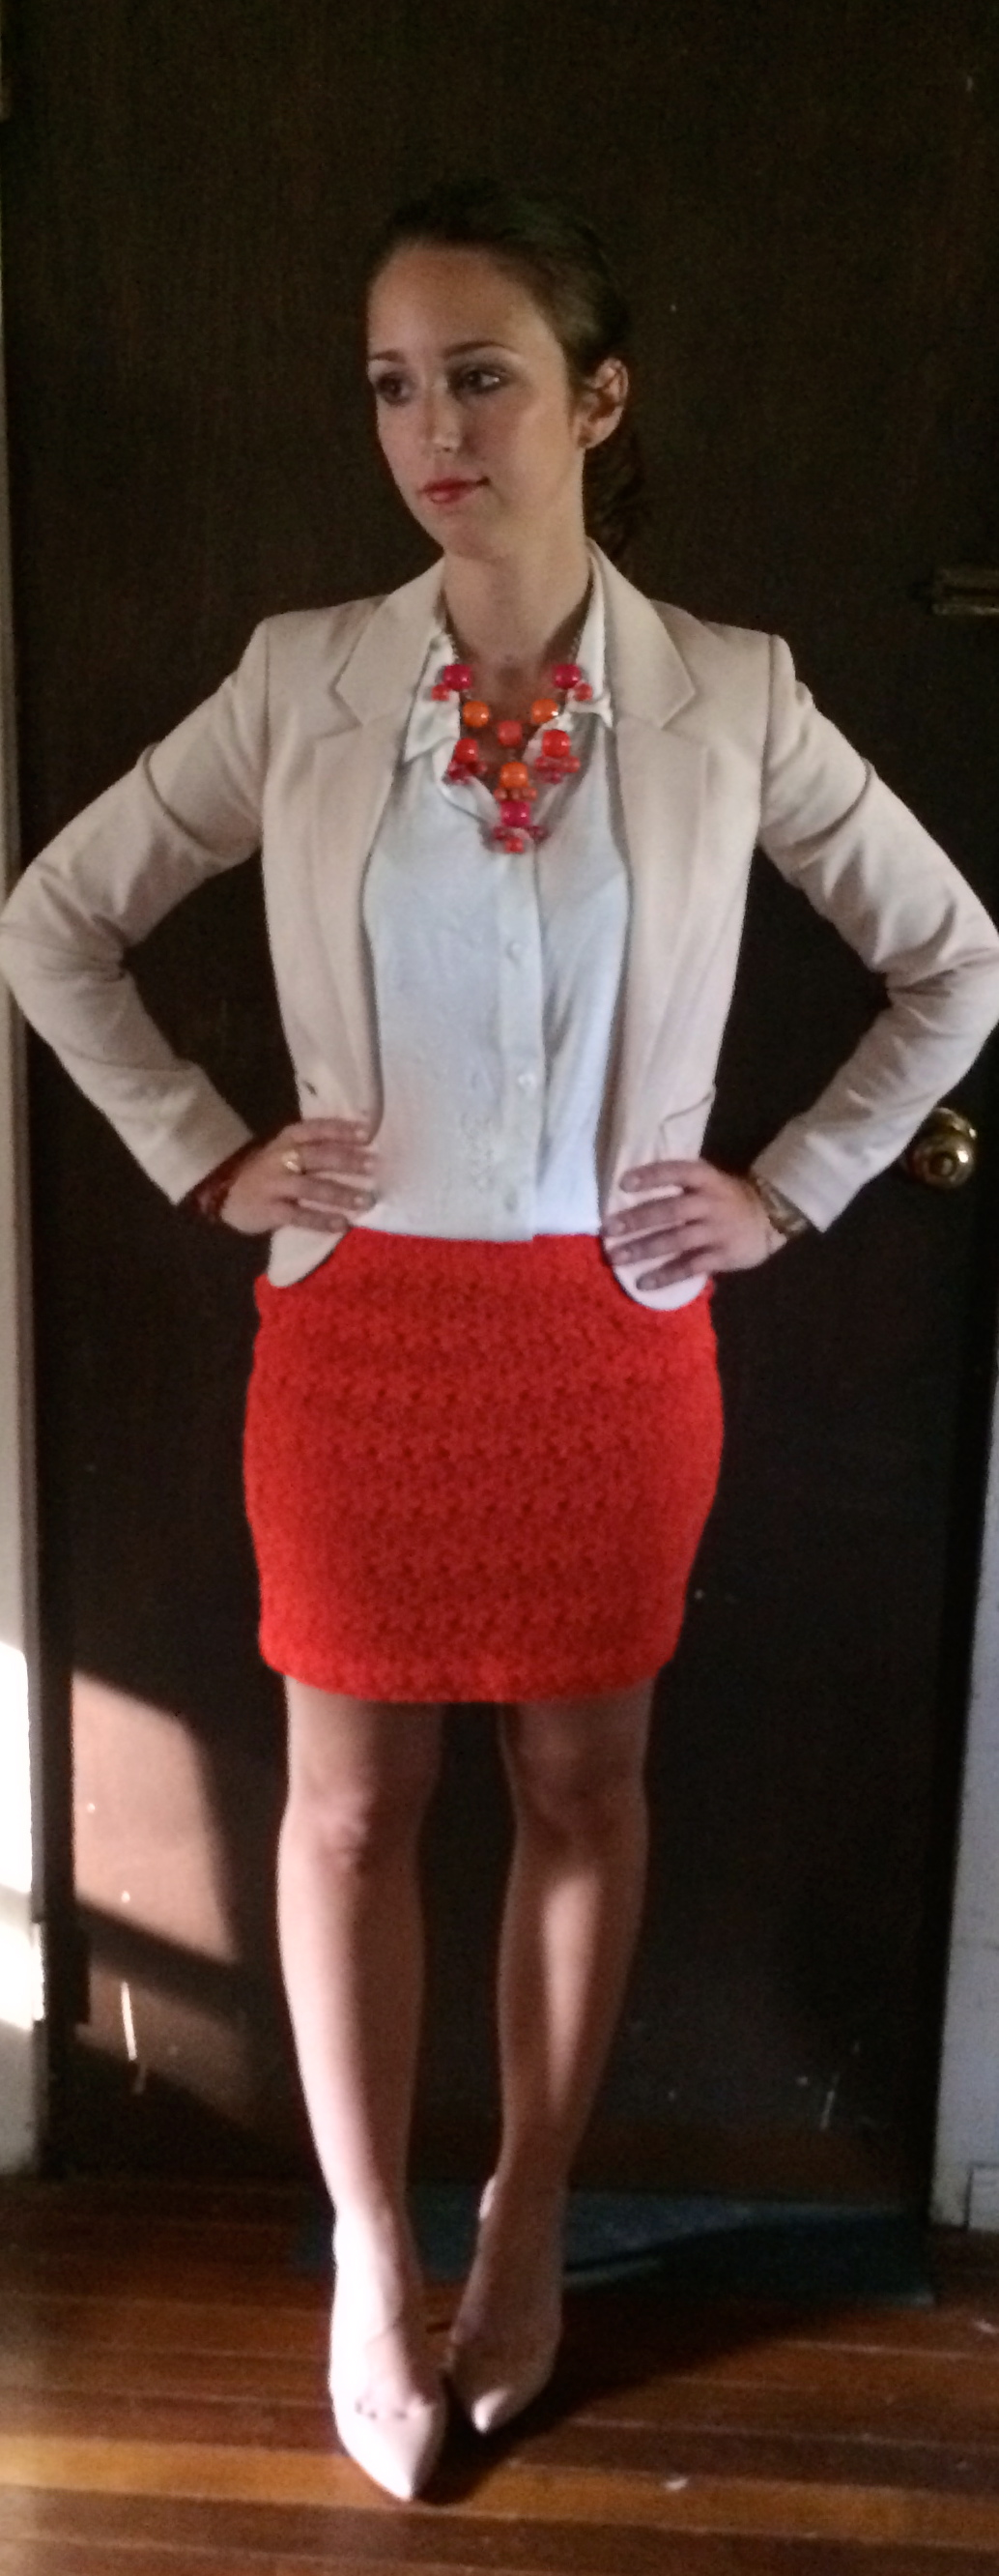 Orange dress what color cardigan goes